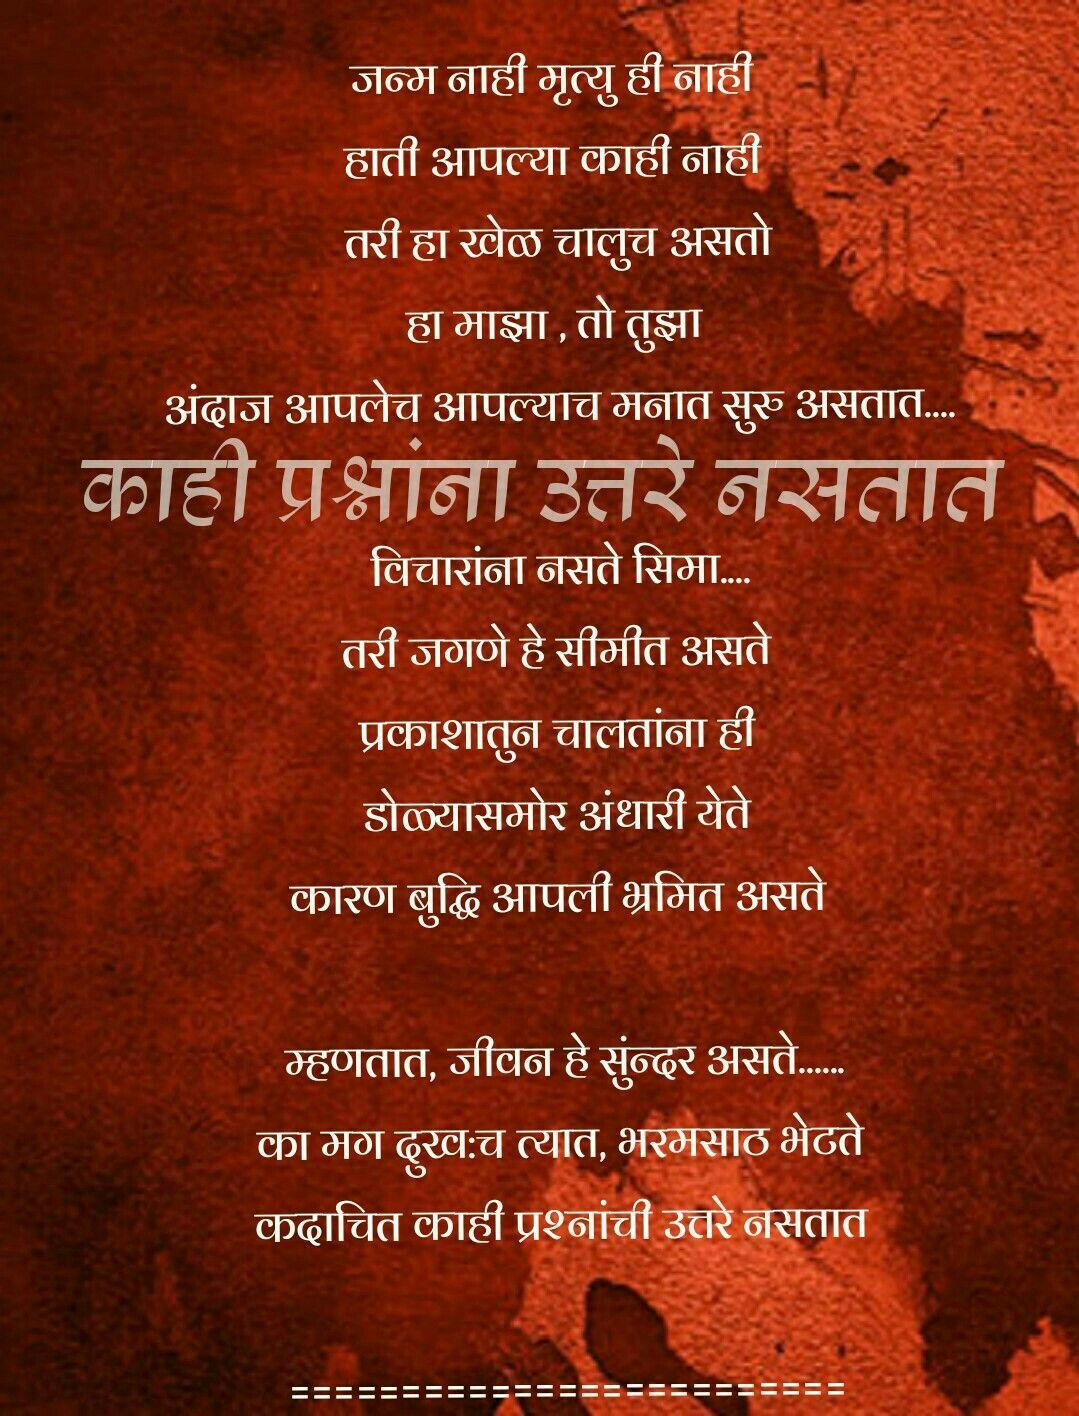 Hope is the thing with feathers: Marathi meaning (9th Poem